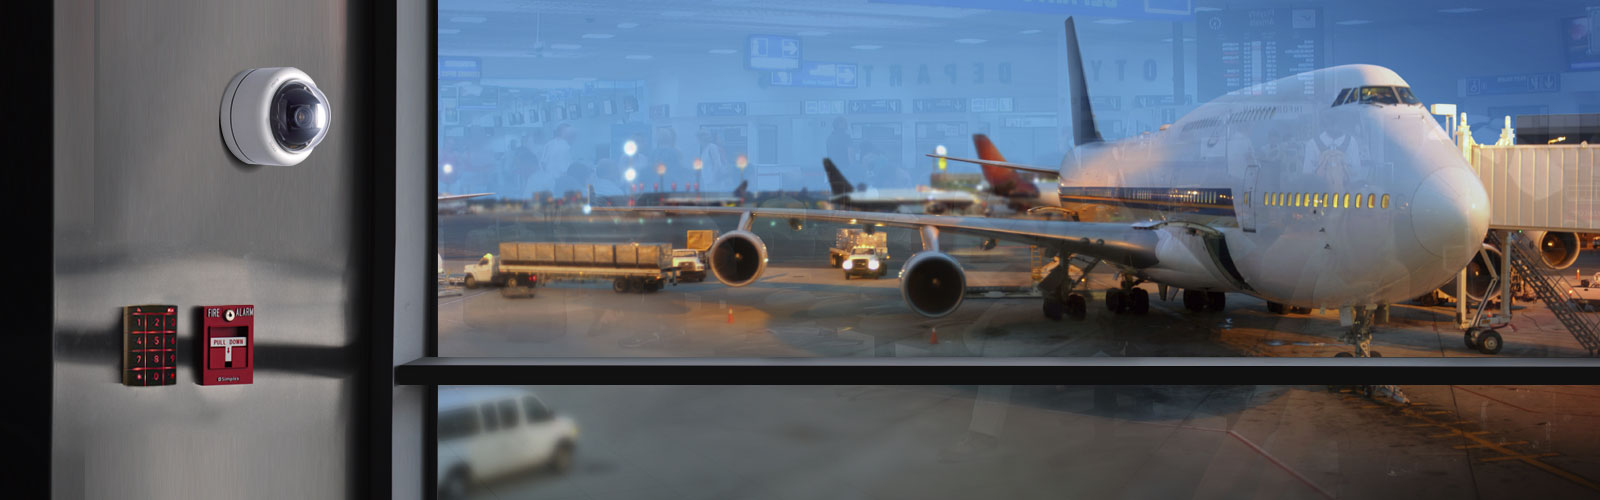 Solutions for Securing Global Airports